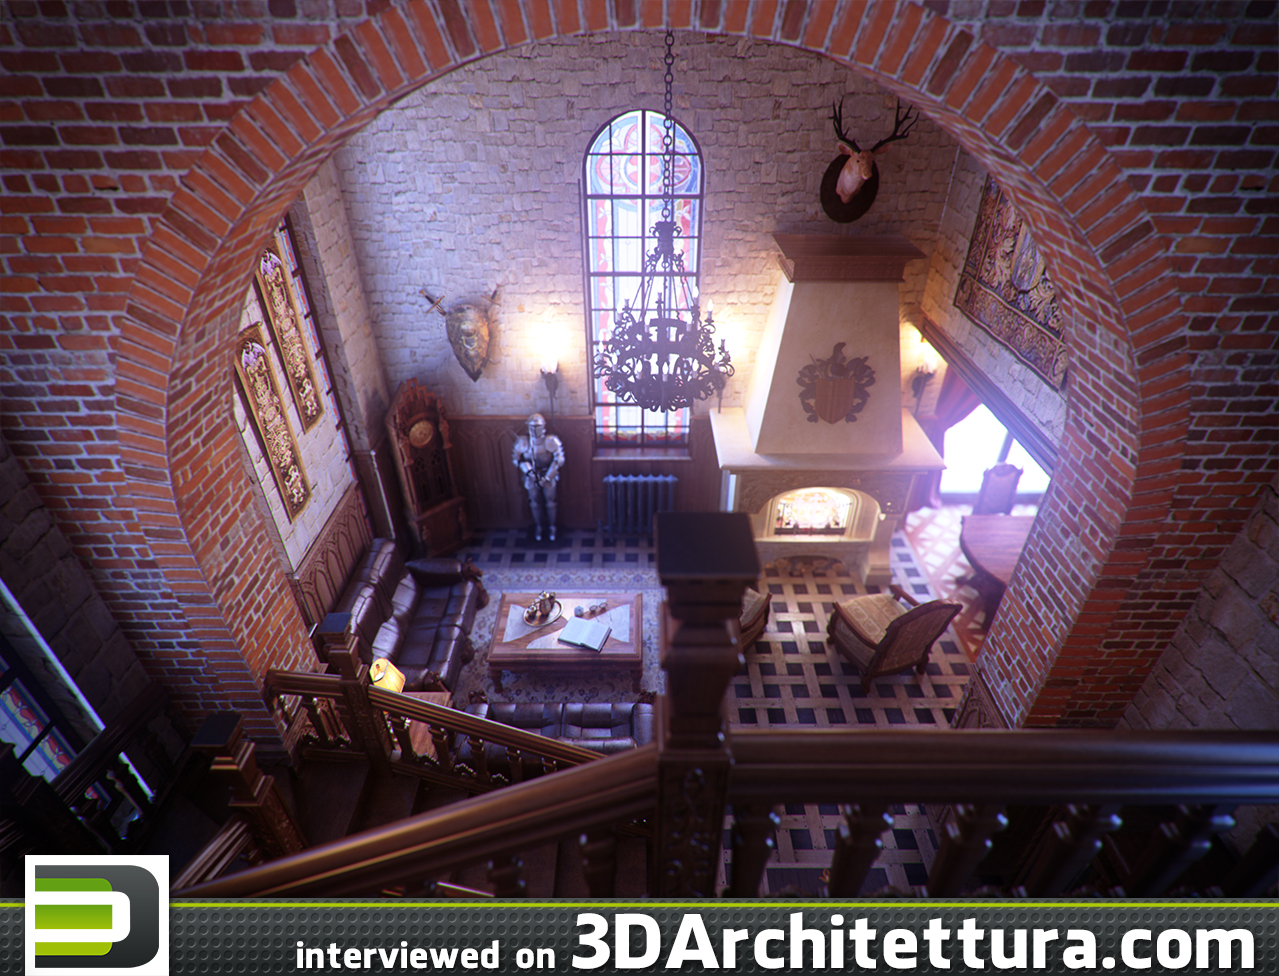 3dvisdesign interview to 3darchittetura about 3d,CG and rendering